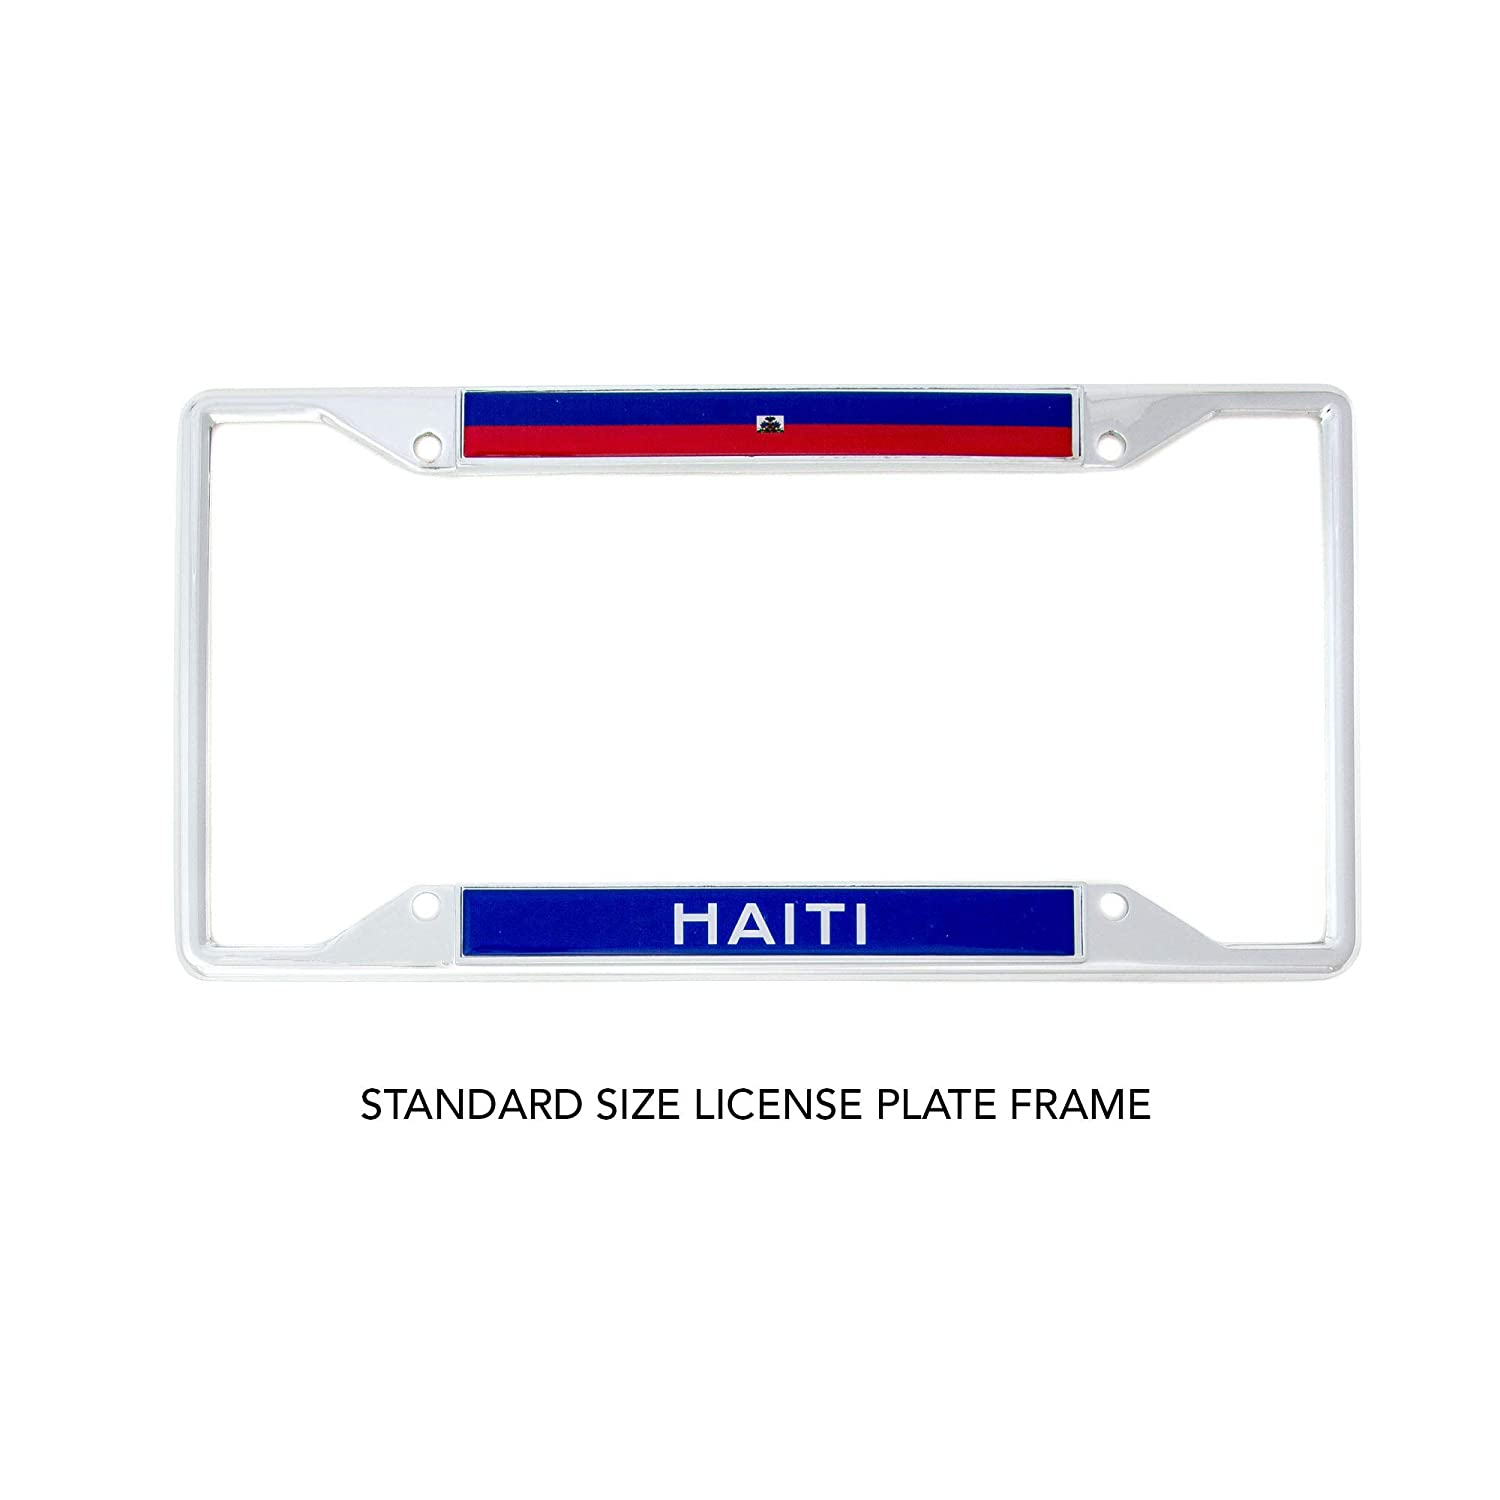 Desert Cactus Country of Haiti Flag License Plate Frame for Front Back of Car Vehicle Truck Haitian